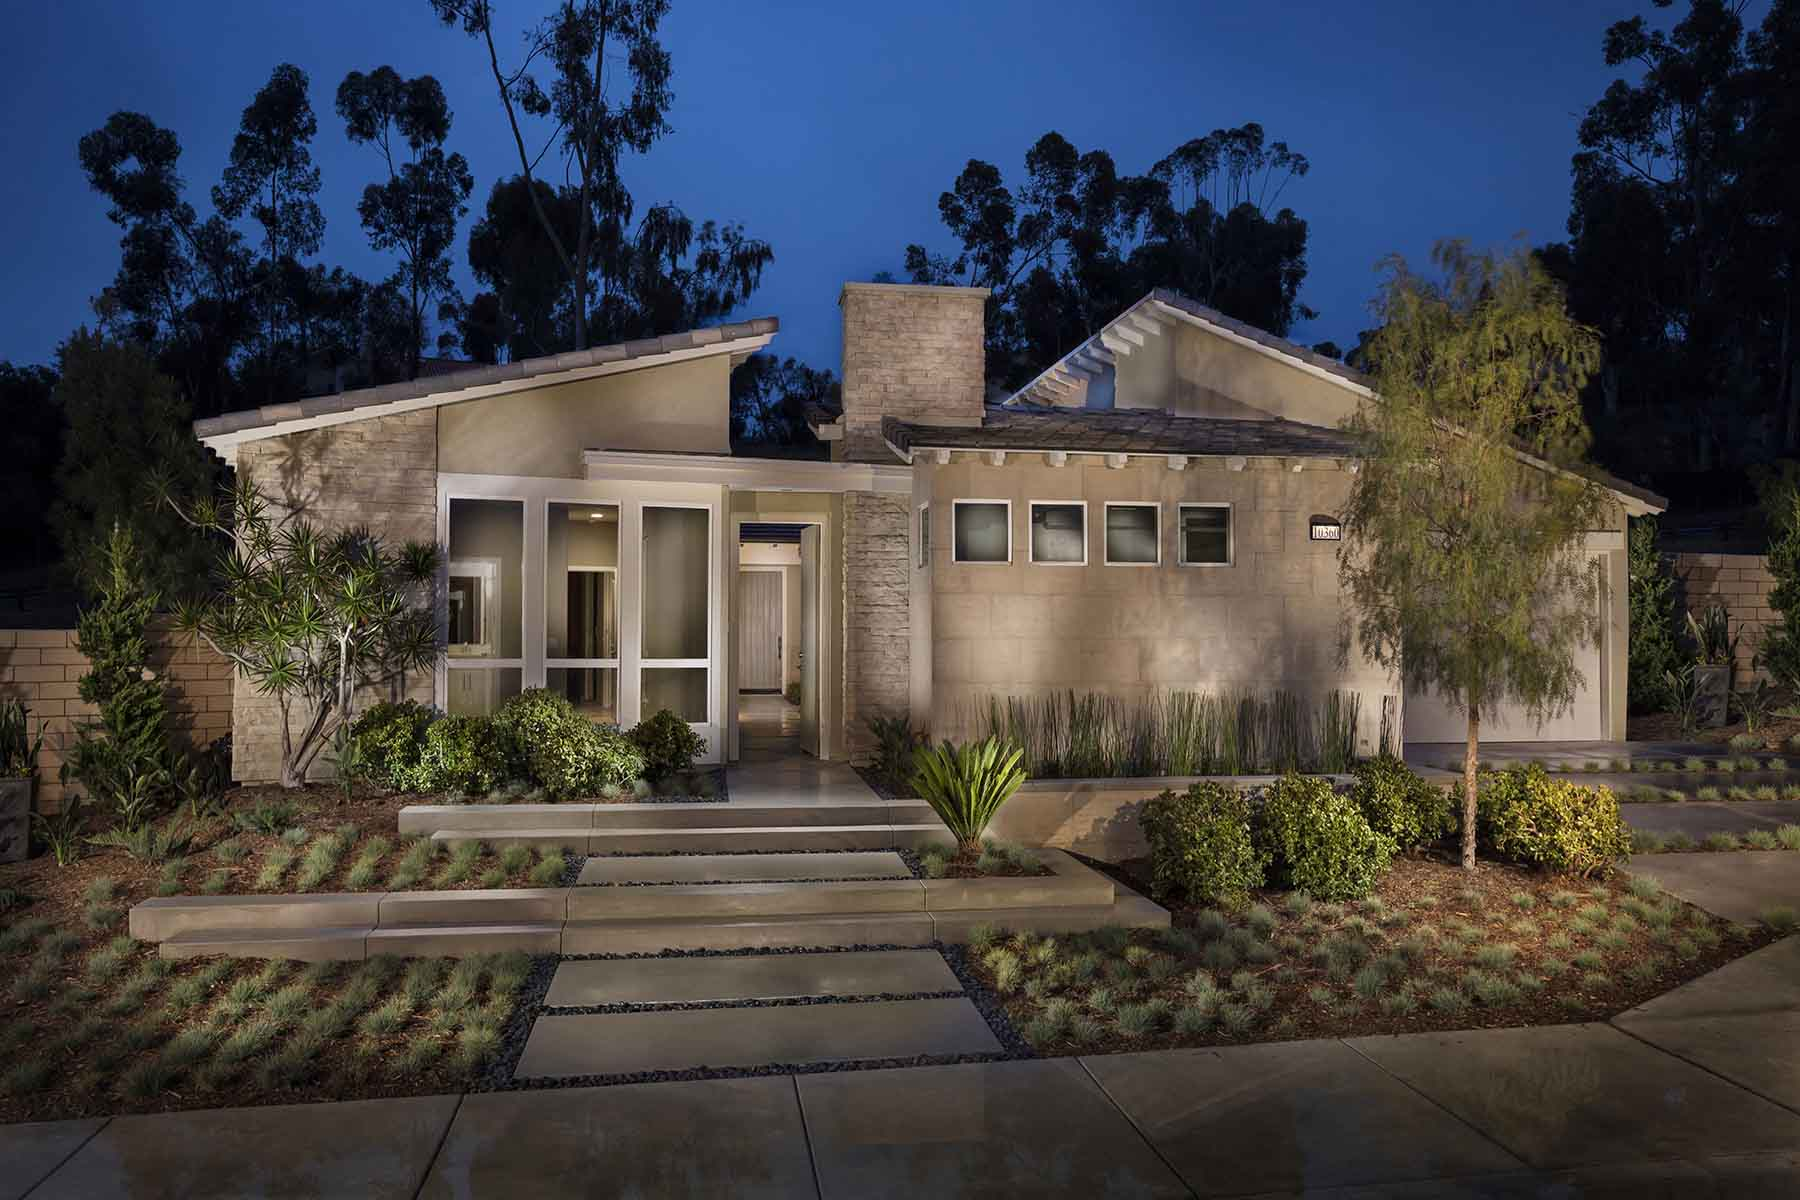 Fairbrook Estates   | San Diego, California    AWARDS  +  2013 Gold Nugget Award  for Home of the Year  +  2013 Gold Nugget Award  for Best Single Family Detached Home 3,000-4,000 Sq. Ft.